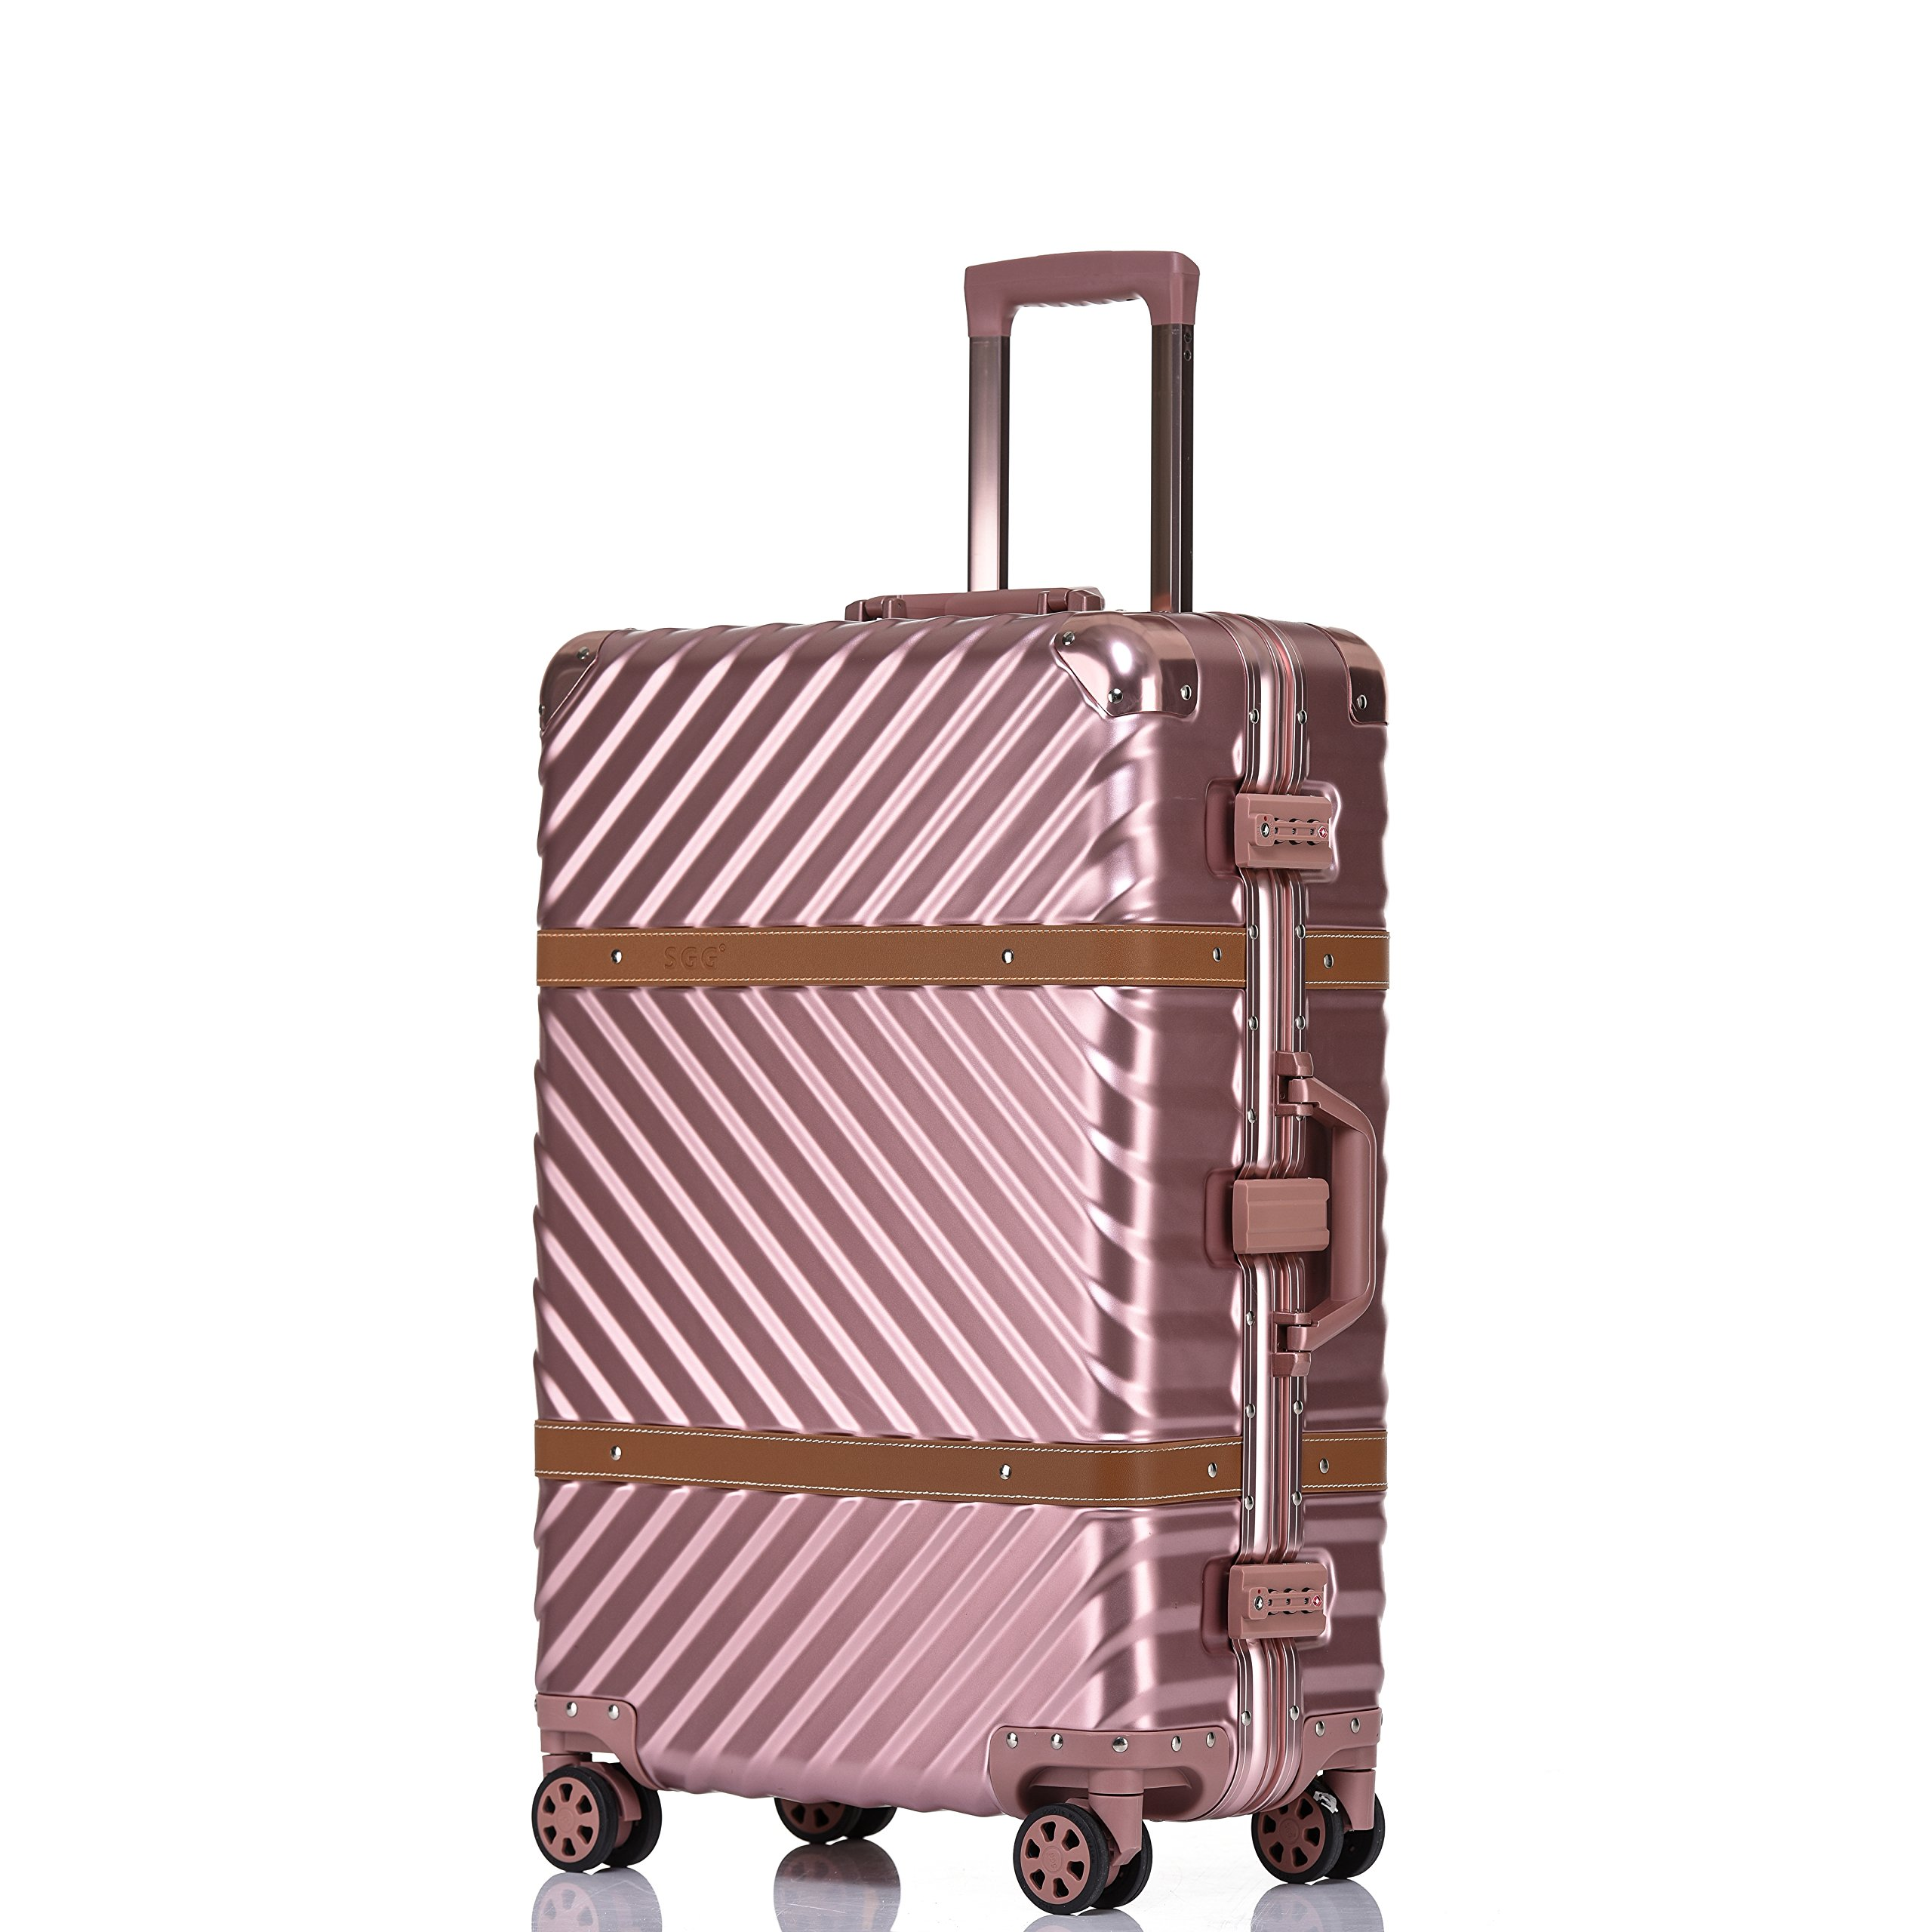 Aluminum Frame Luggage, 28 Inch Hardside Fashion Suitcase with Detachable Spinner Wheels, Rose Gold